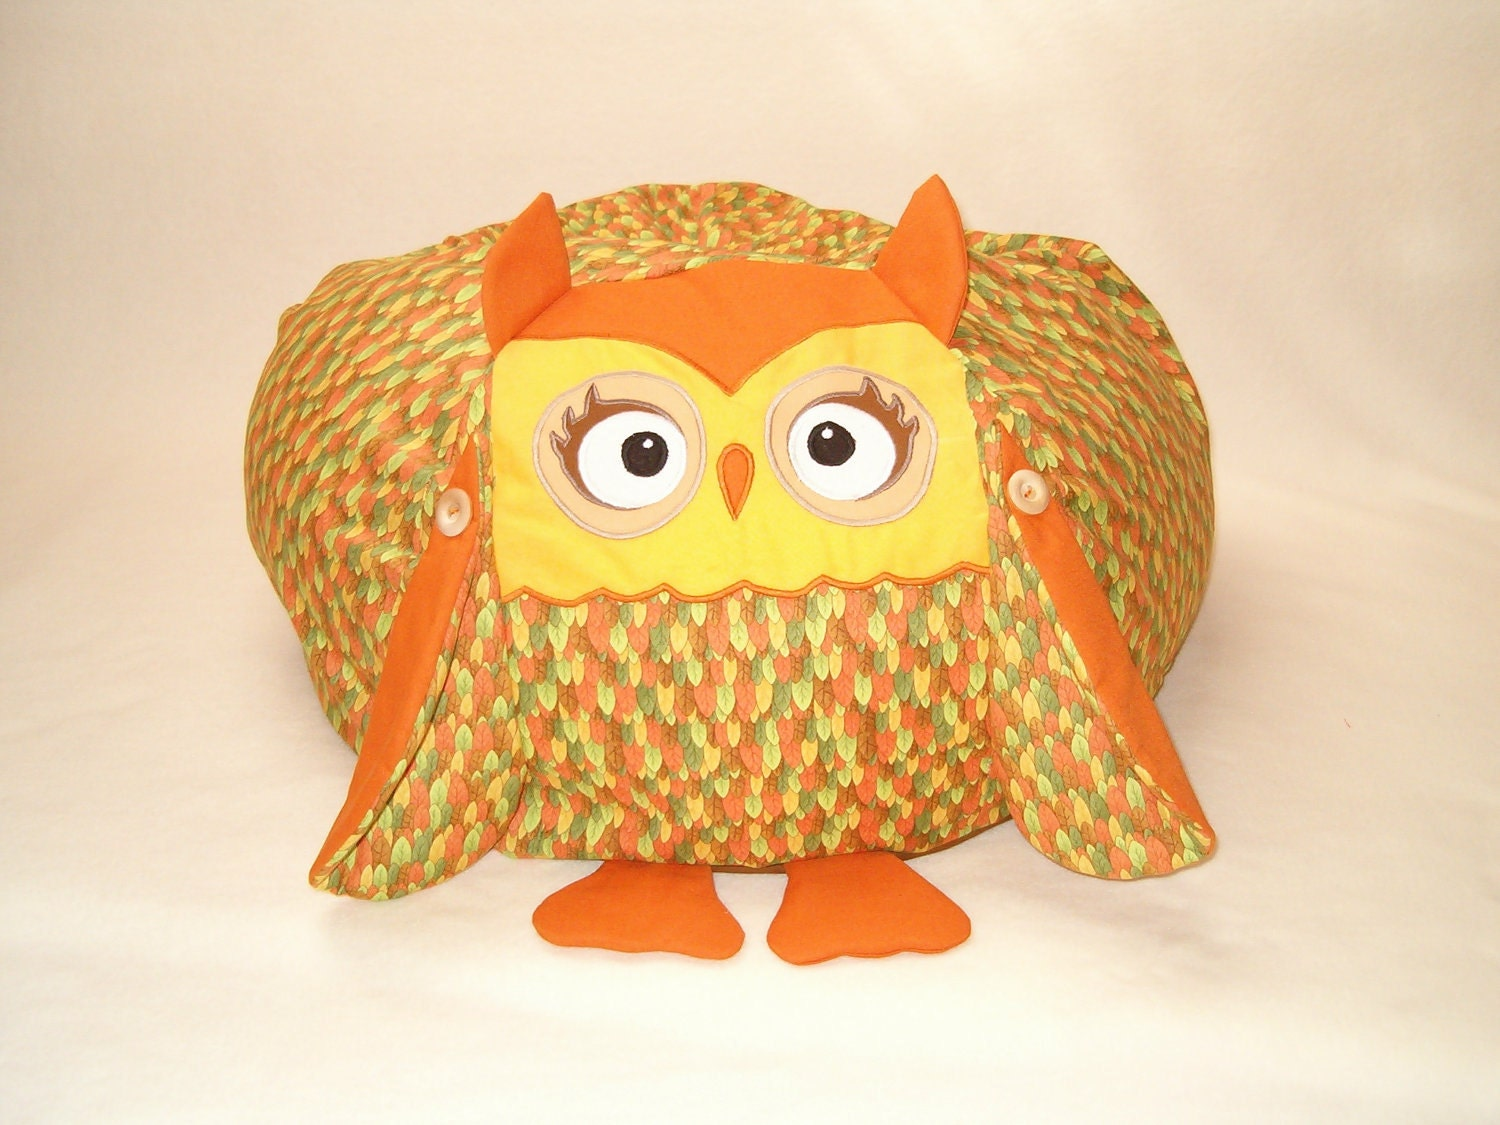 Owl Bean Bag Chair Cover Filling Is Not Included Het